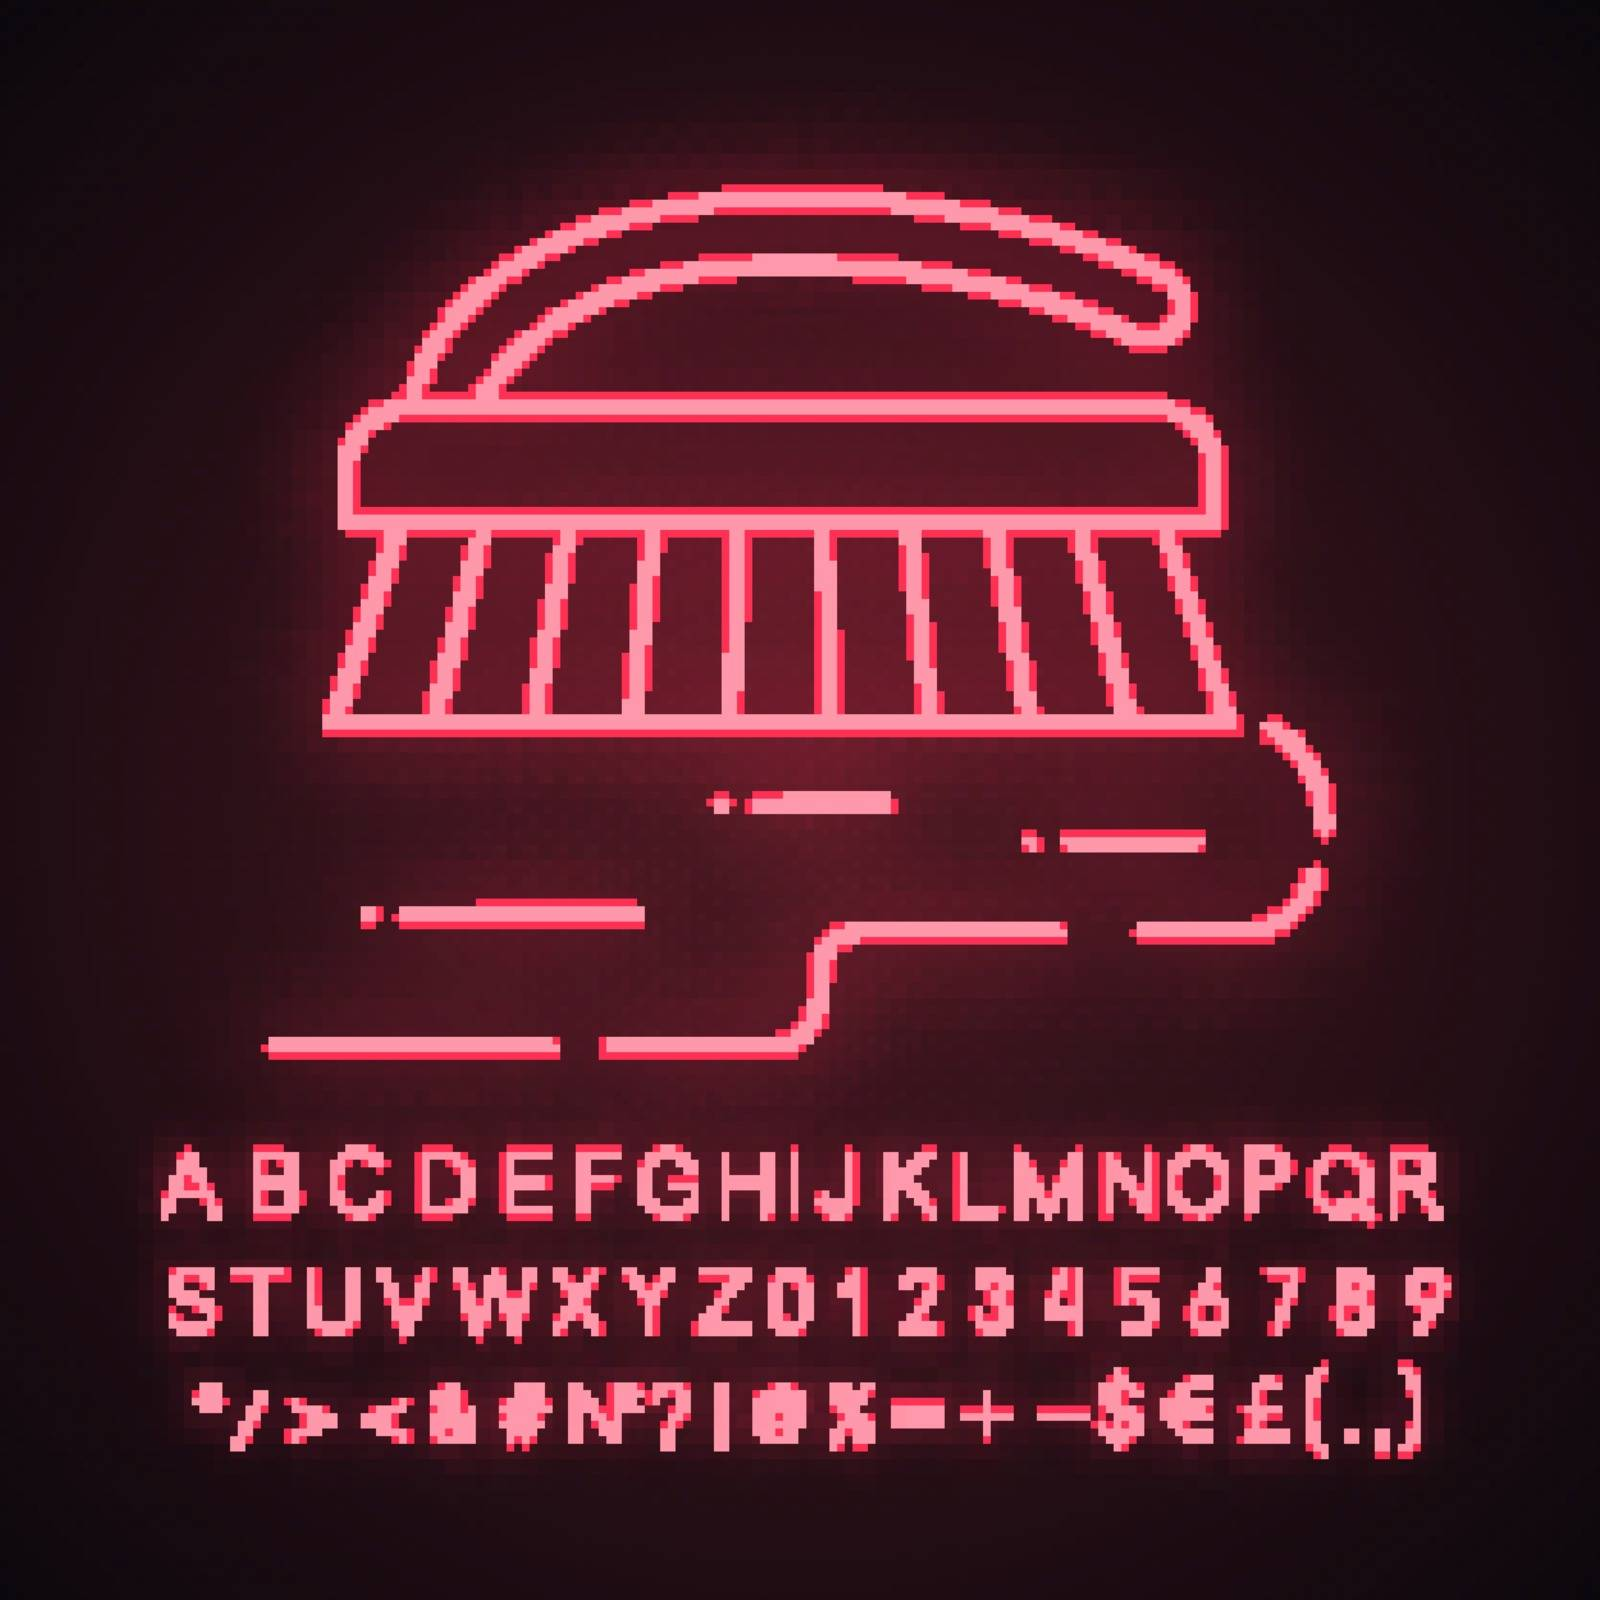 Scrub brush neon light icon. Carpet cleaning brush. Glowing sign with alphabet, numbers and symbols. Vector isolated illustration